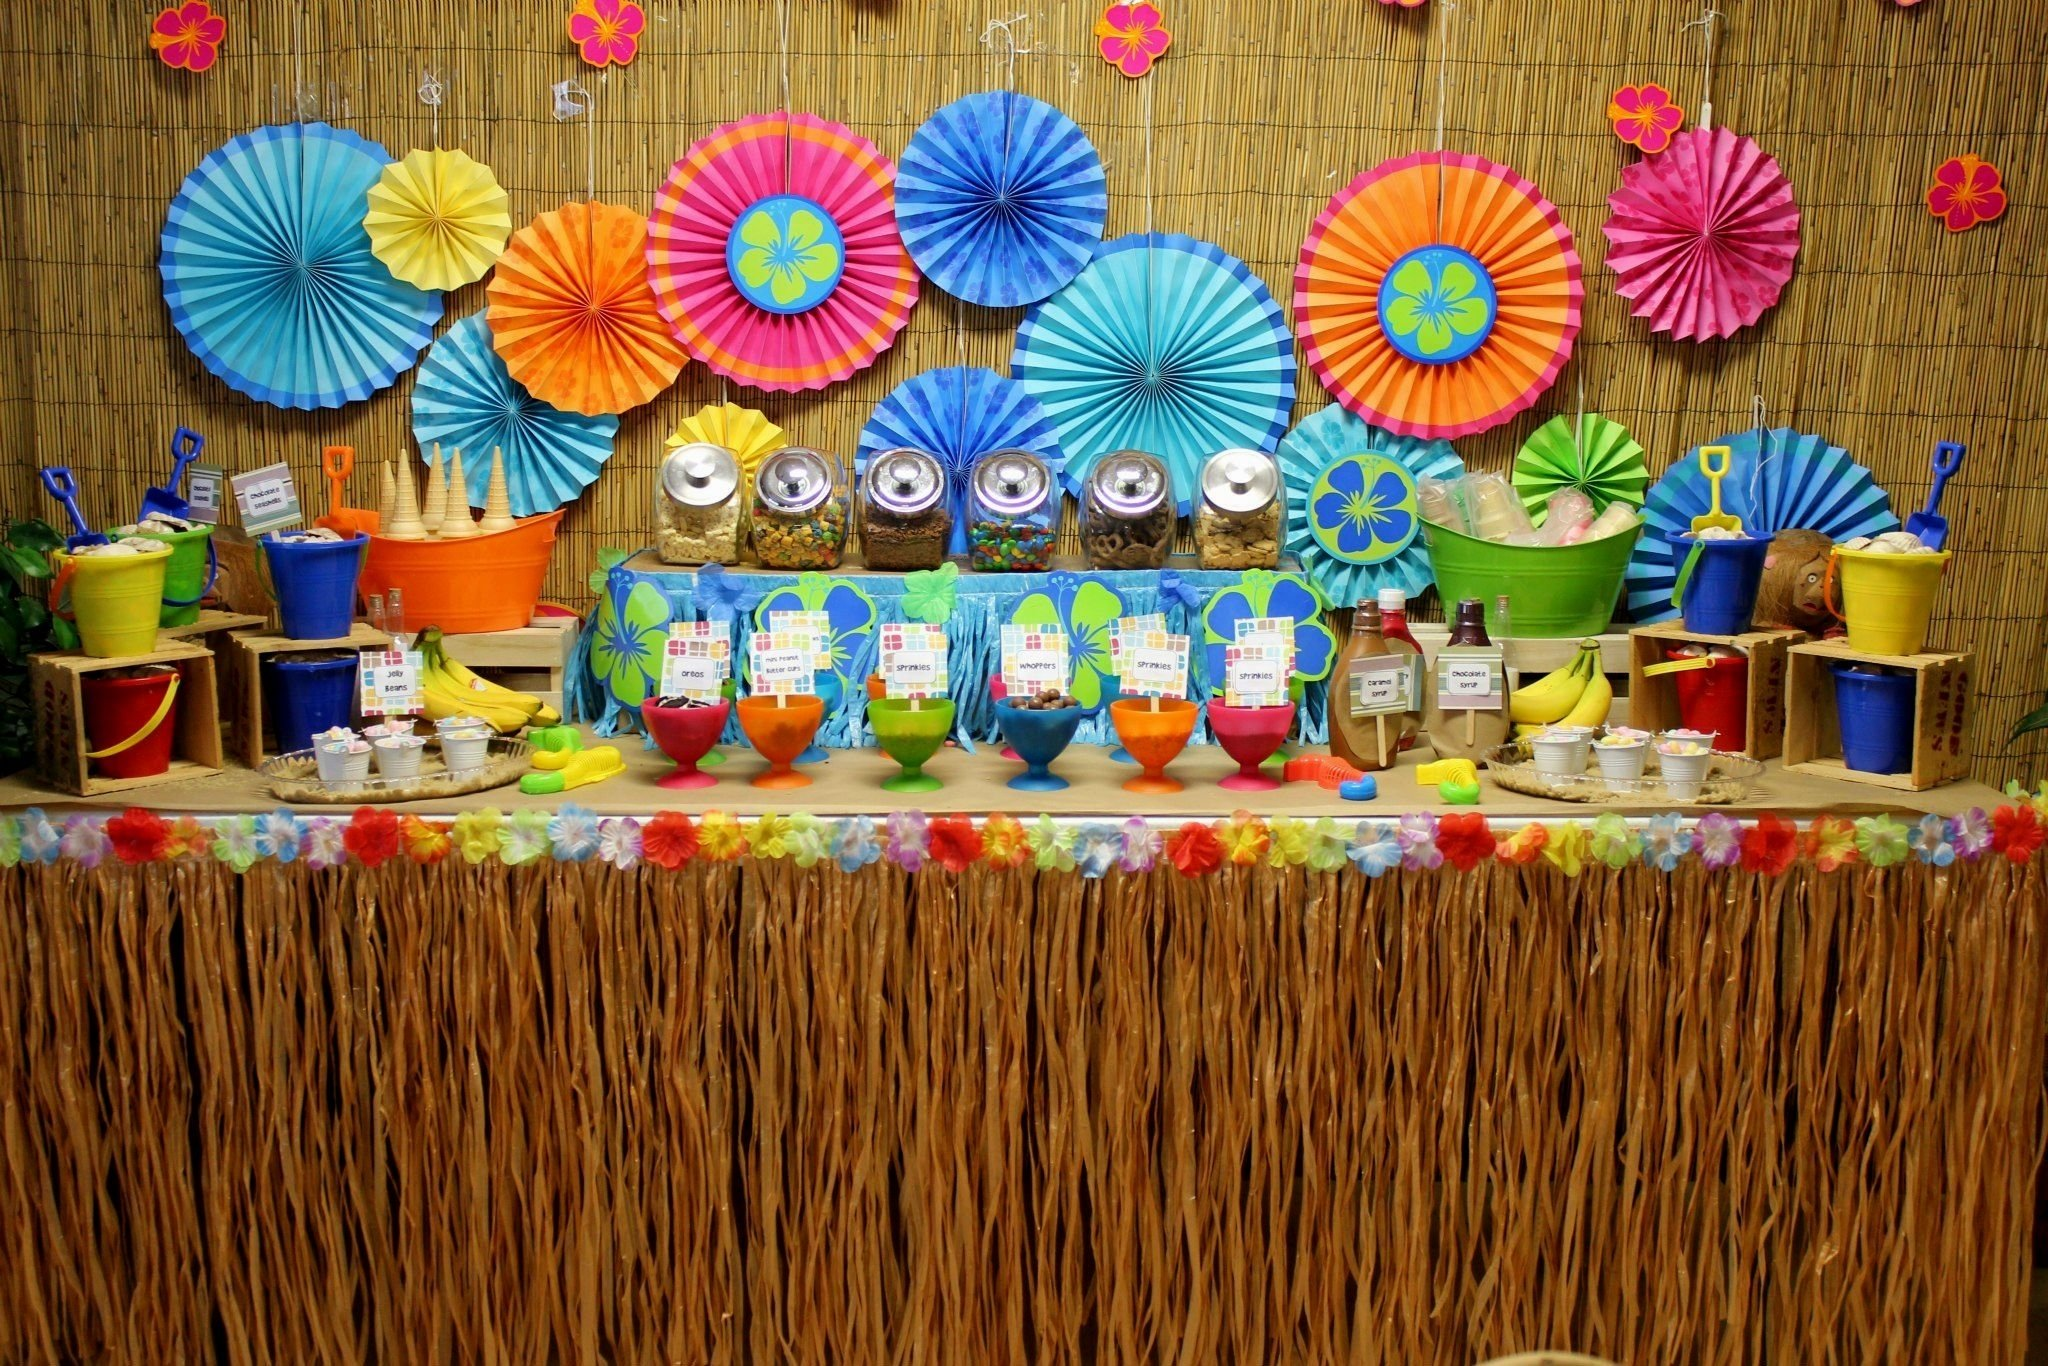 10 Awesome Party Theme Ideas For Adults summer party theme ideas for adults decorating of party